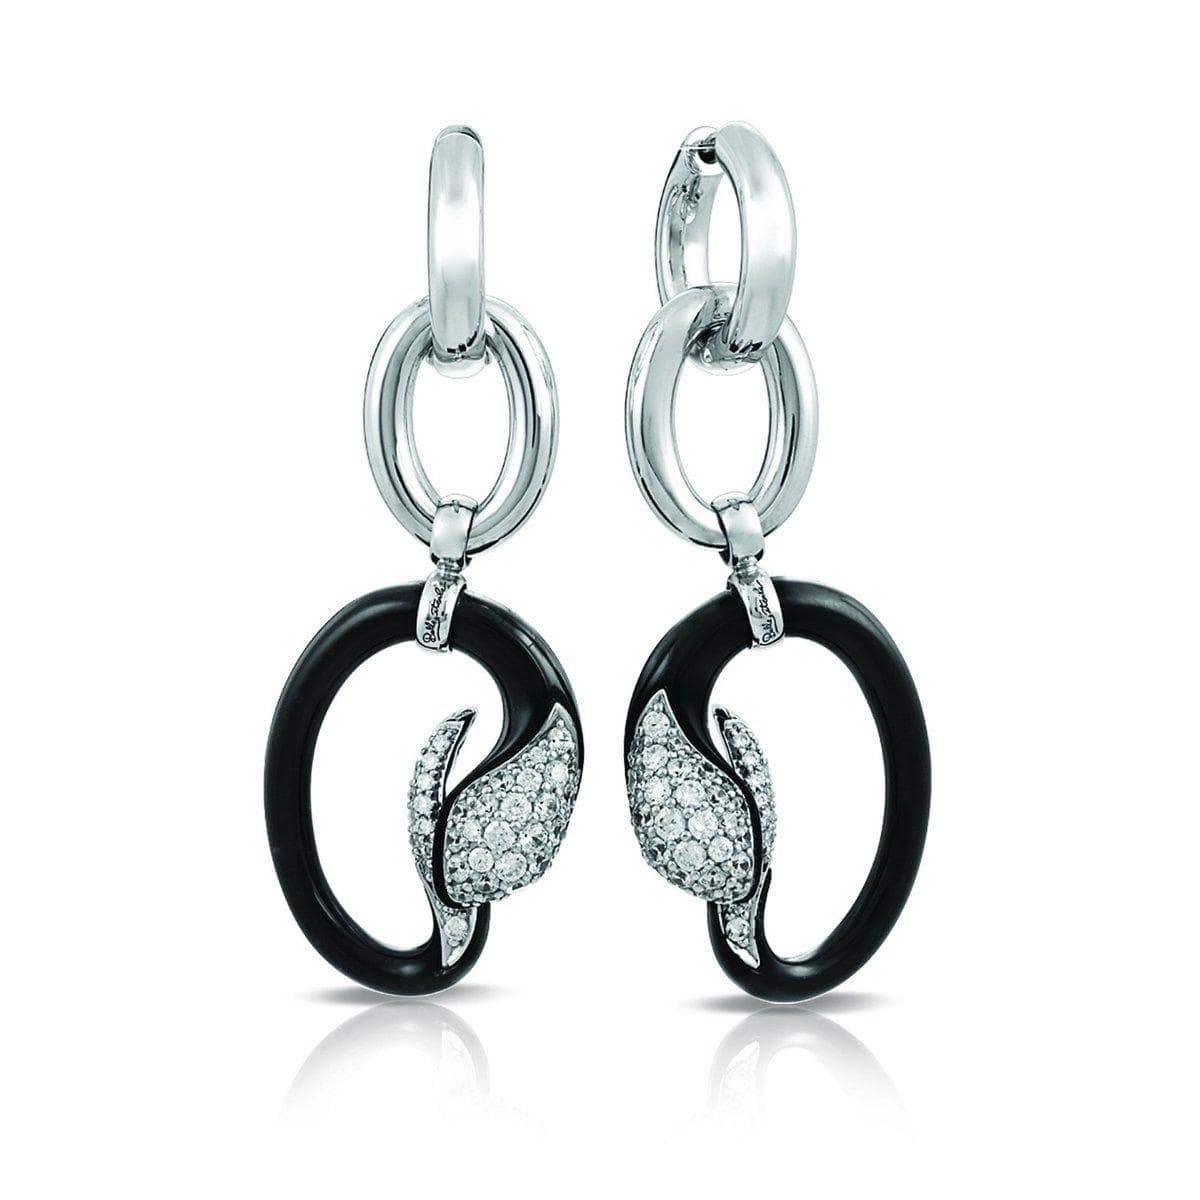 Mamba Black Earrings-Belle Etoile-Renee Taylor Gallery